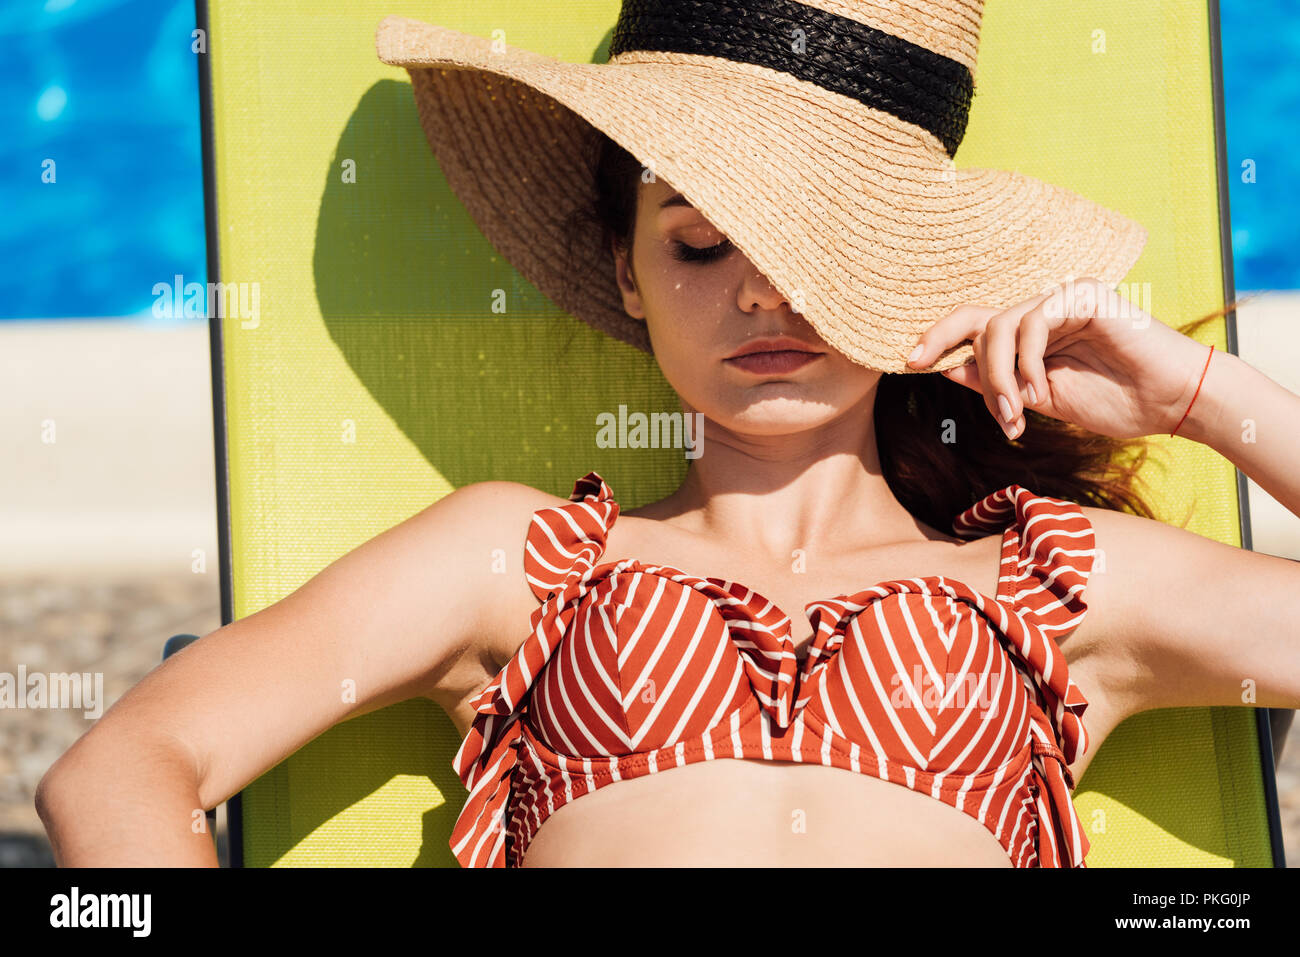 close-up portrait of attractive young woman in straw hat and bikini relaxing on sun lounger at poolside - Stock Image